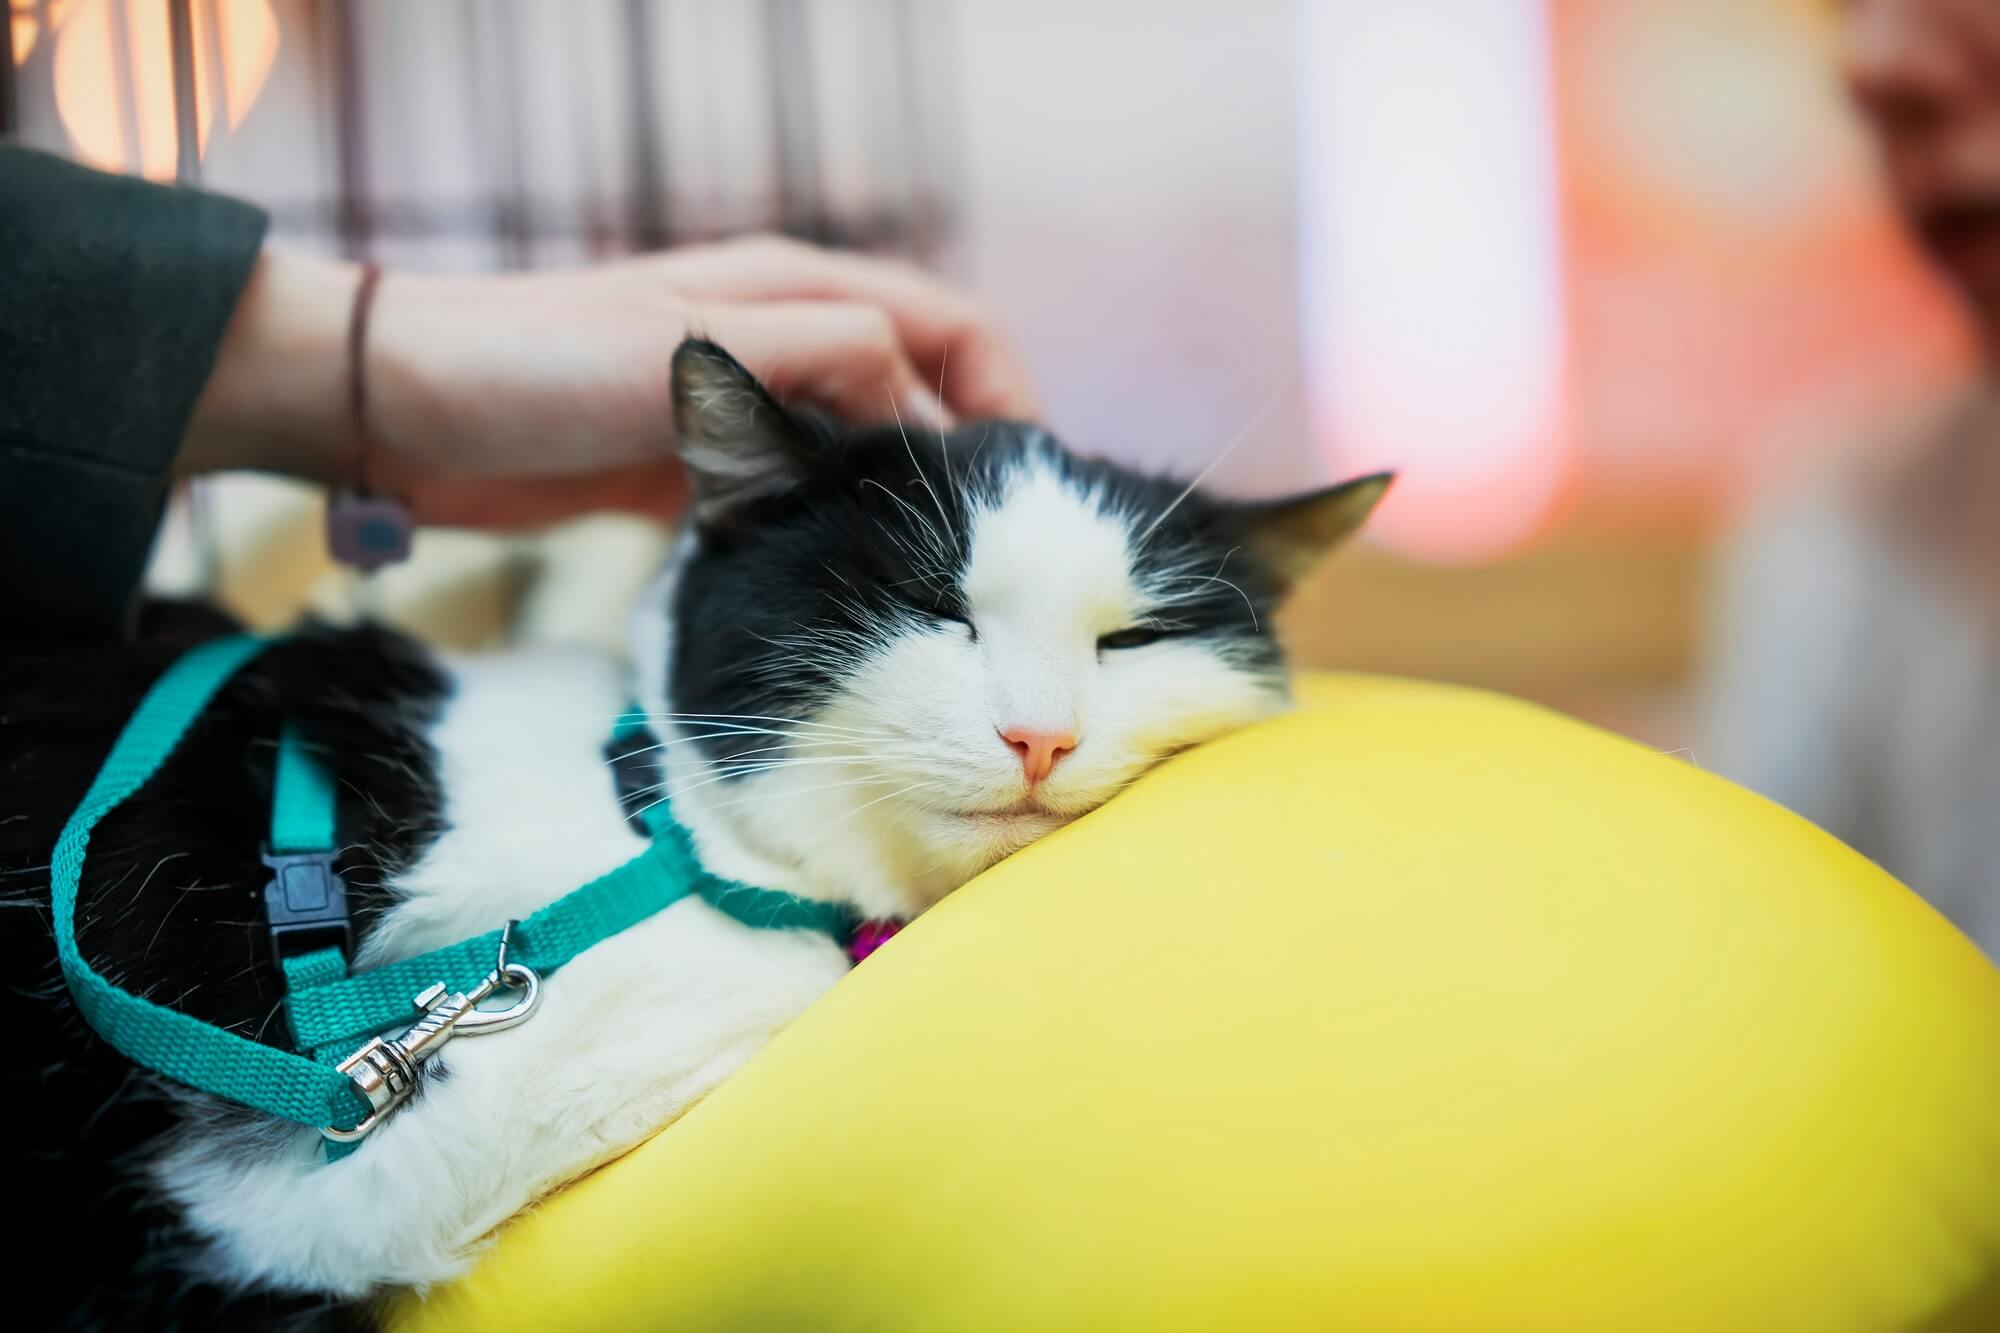 Sad cat lying on big yellow pillow in cage waiting for treatment of veterinary clinic